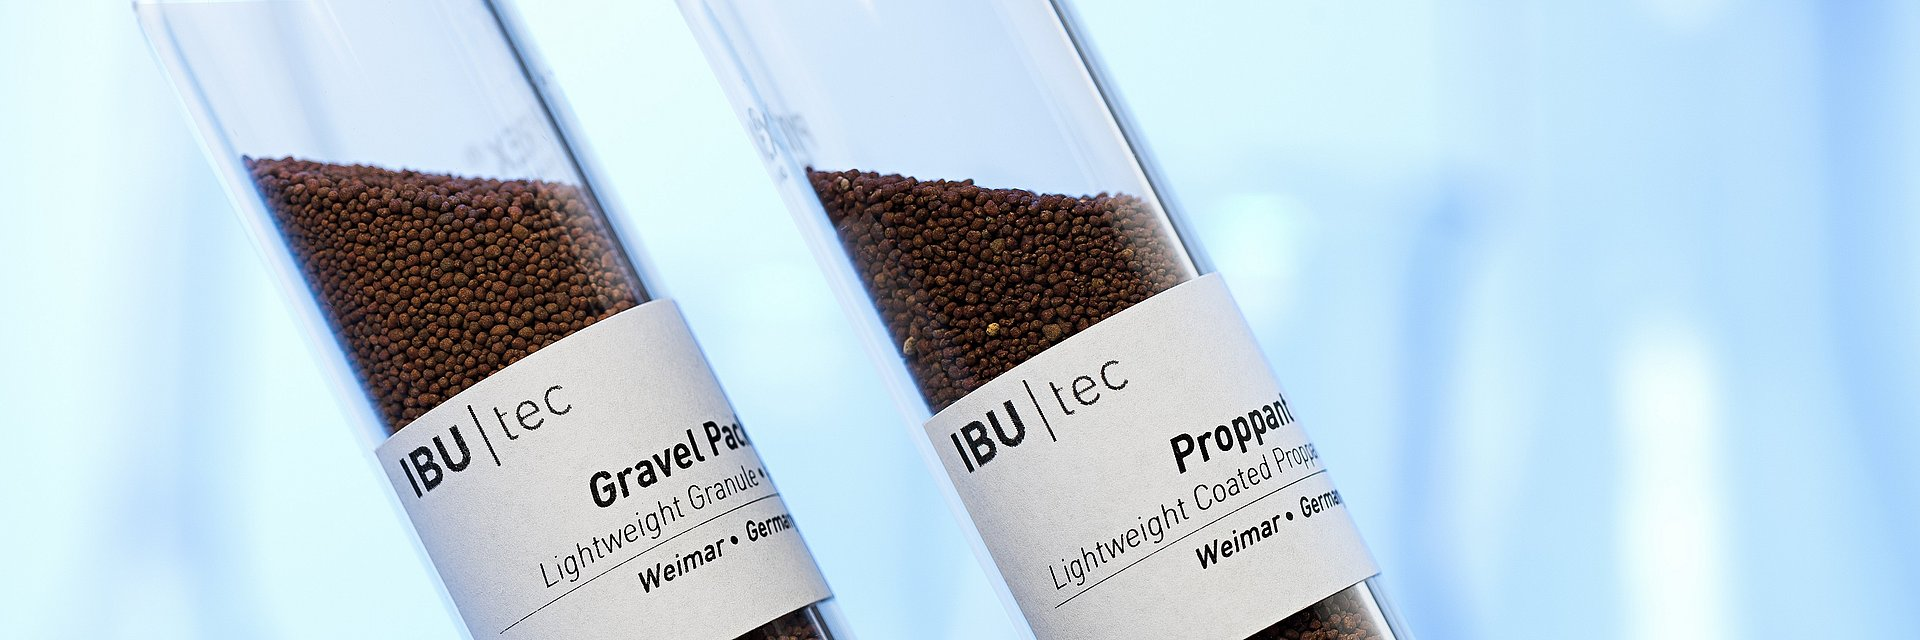 proppants and gravel pack in test tubes for mining or extraction of oil or gas from IBU-tec development